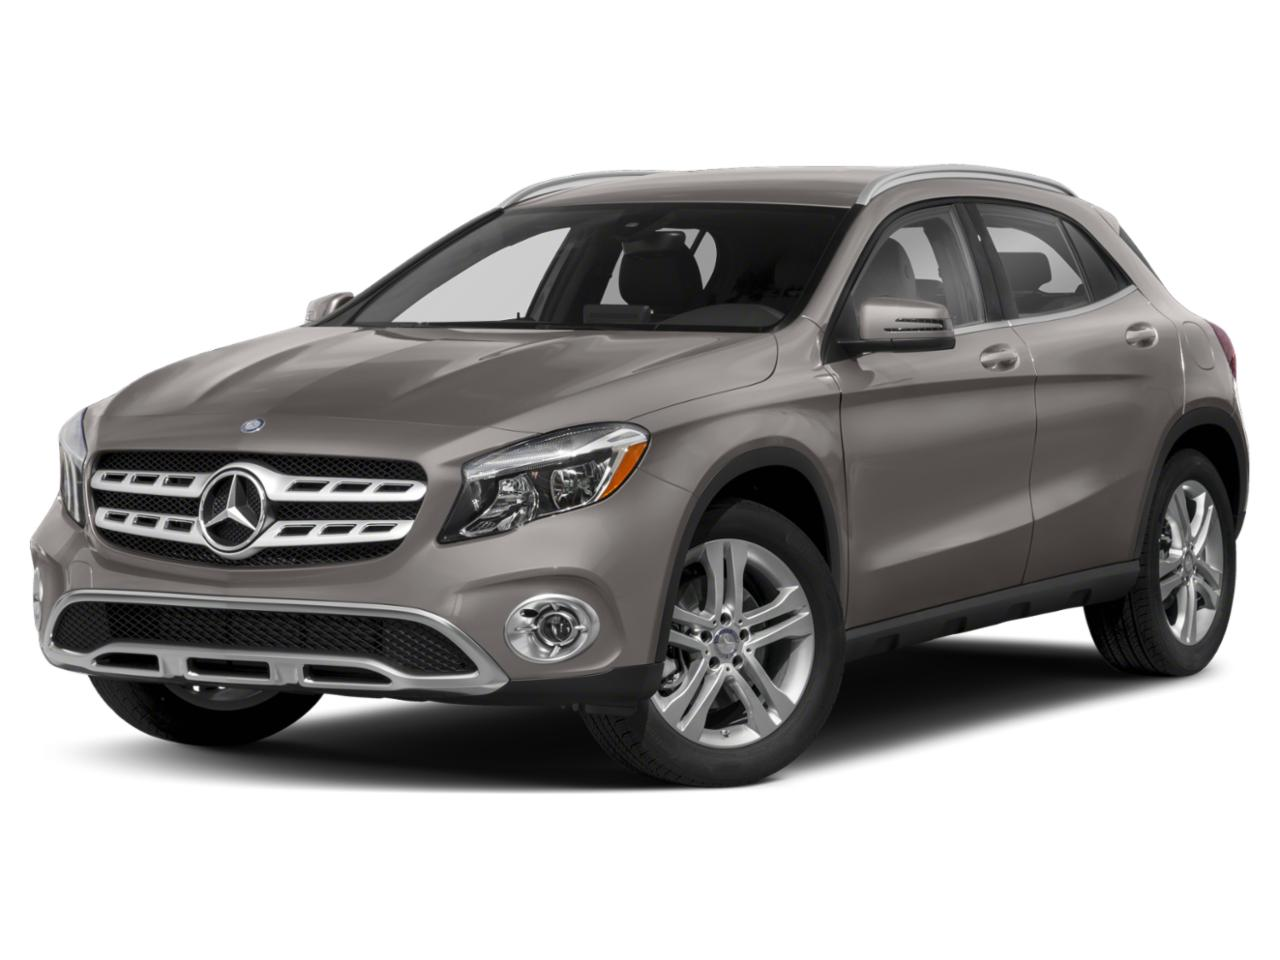 2018 Mercedes-Benz GLA Vehicle Photo in Odessa, TX 79762